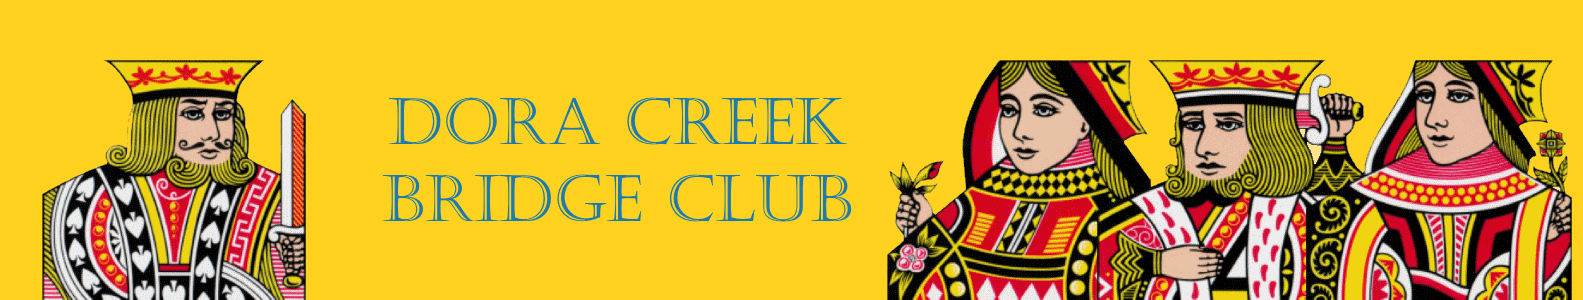 Results from Dora Creek games